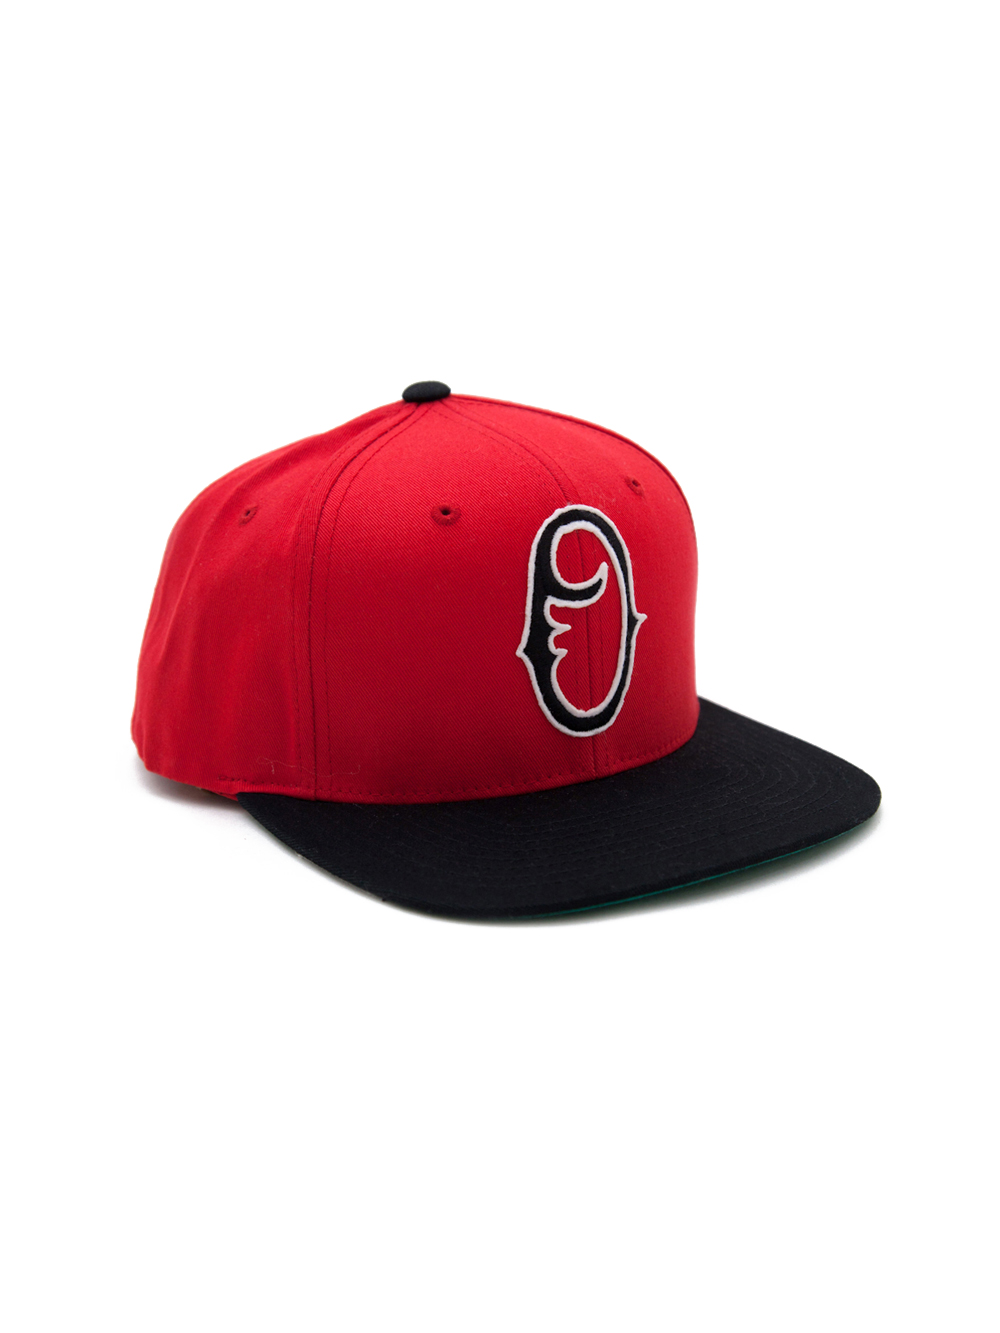 16d41fc9b5d Staple Snapback Hat - Obey Clothing UK